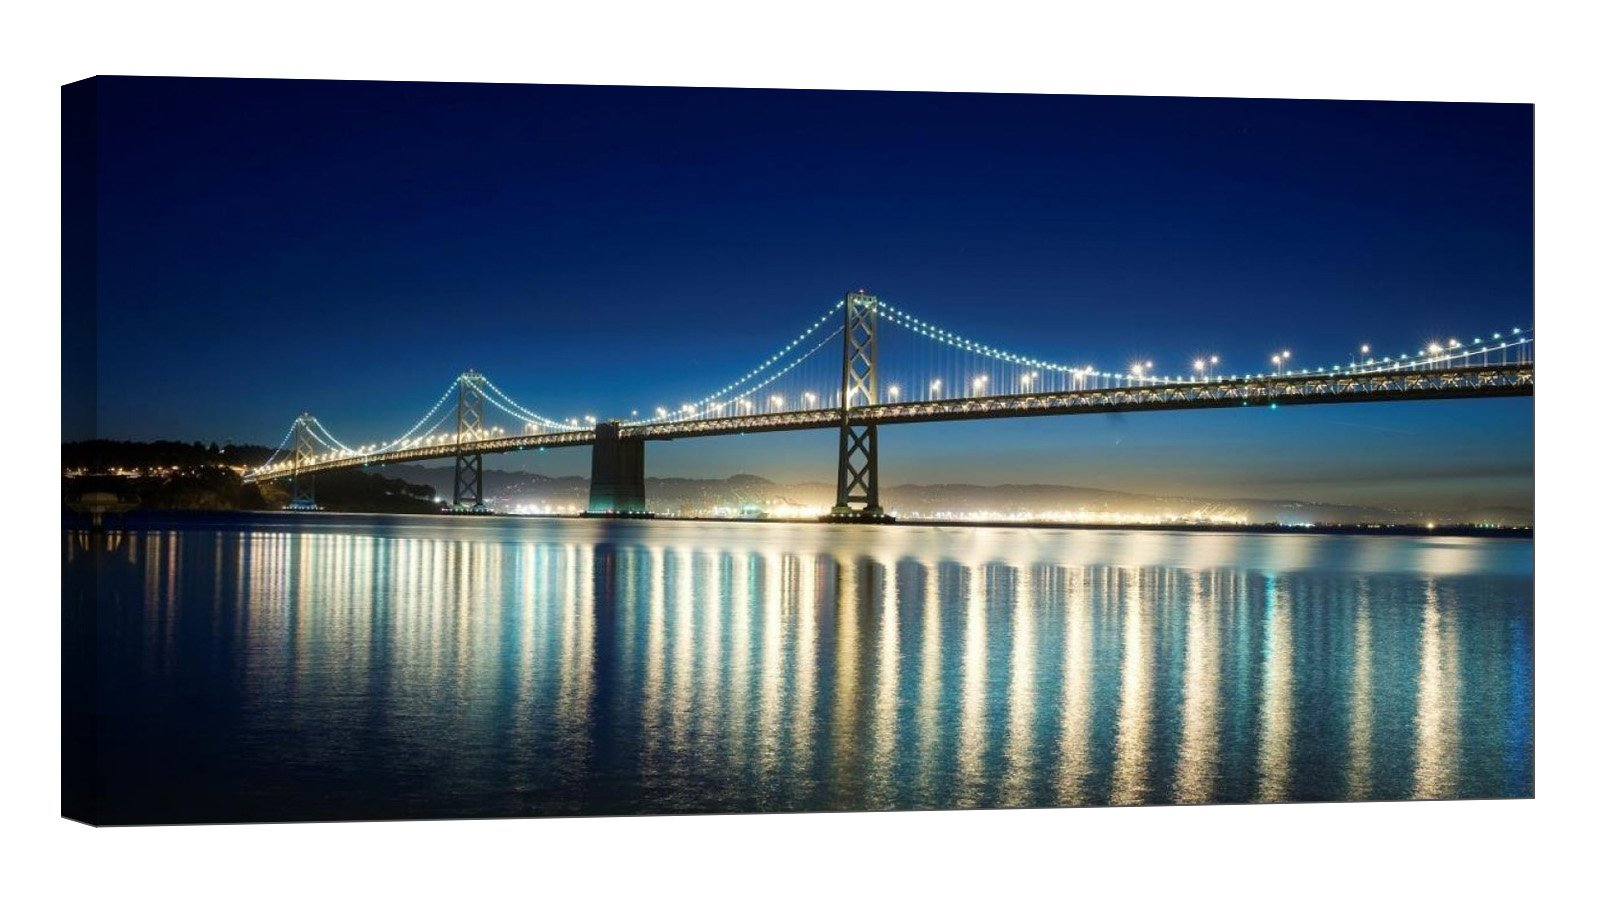 LightFairy Glow in The Dark Canvas Painting - Stretched and Framed Giclee Wall Art Print - City Urban San Francisco Bay Bridge - Master Bedroom Living Room Décor - 32 x 16 inch